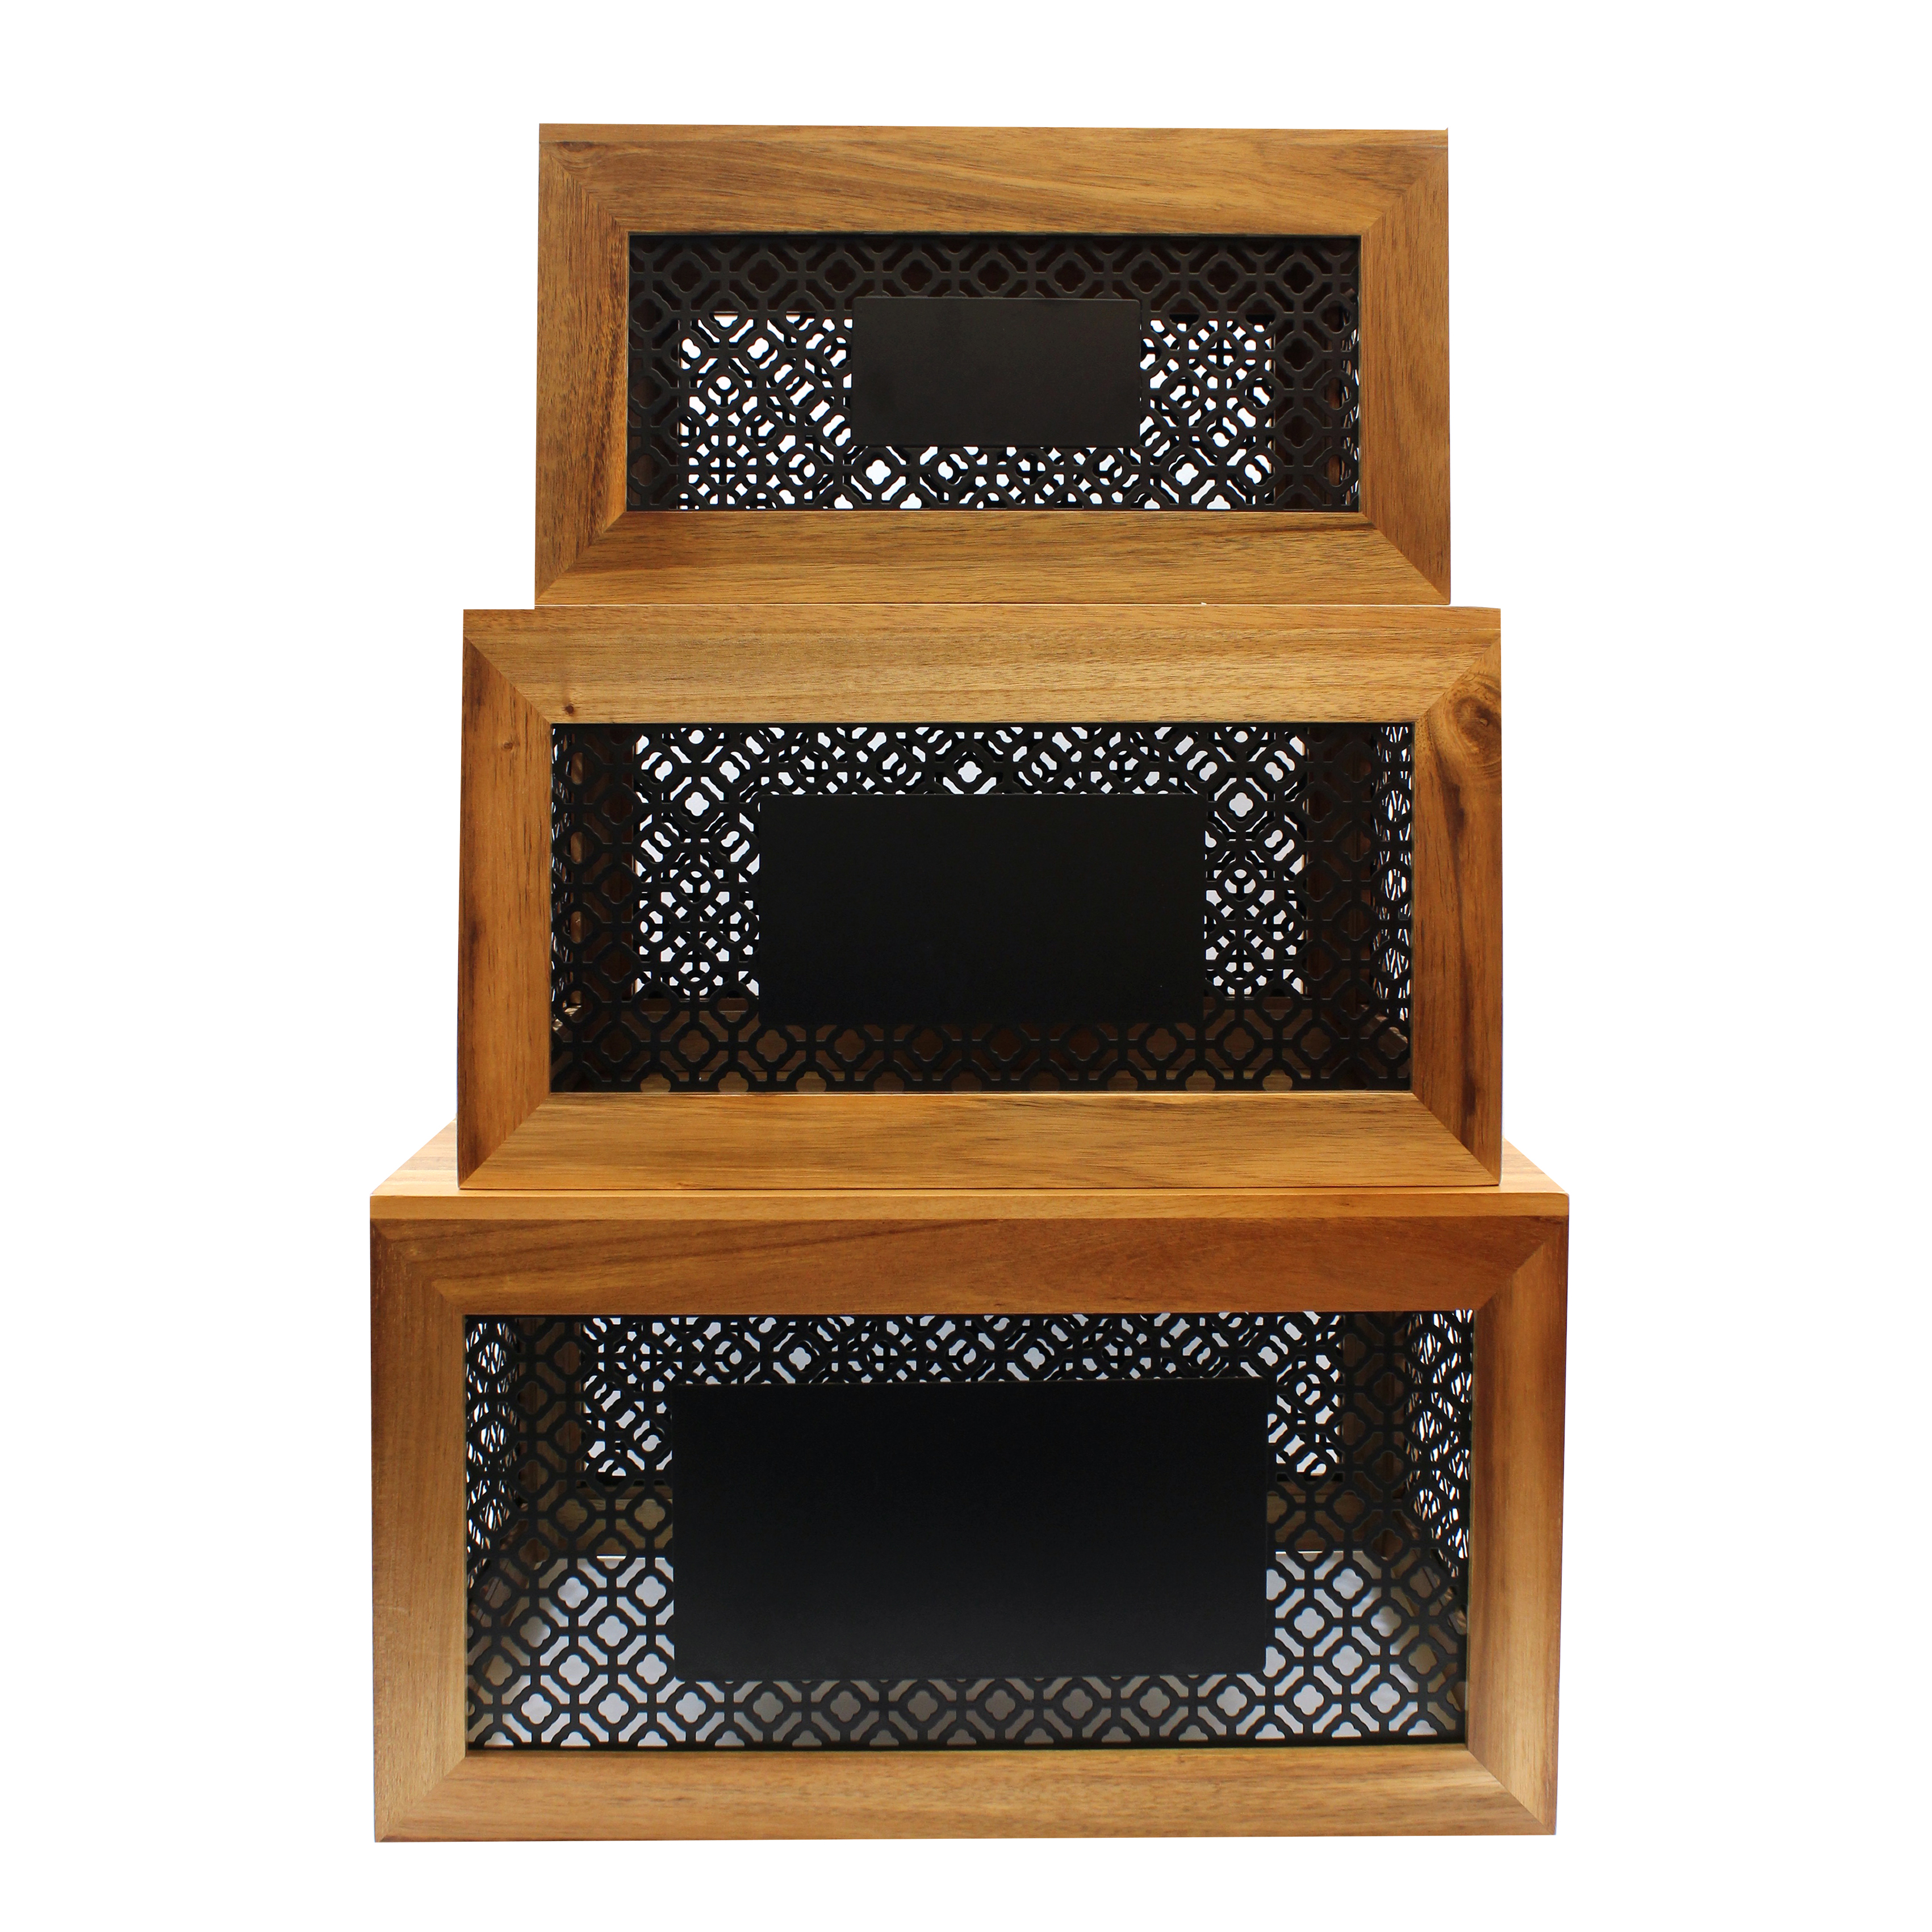 TableCraft Products HFCSET3 display riser, set